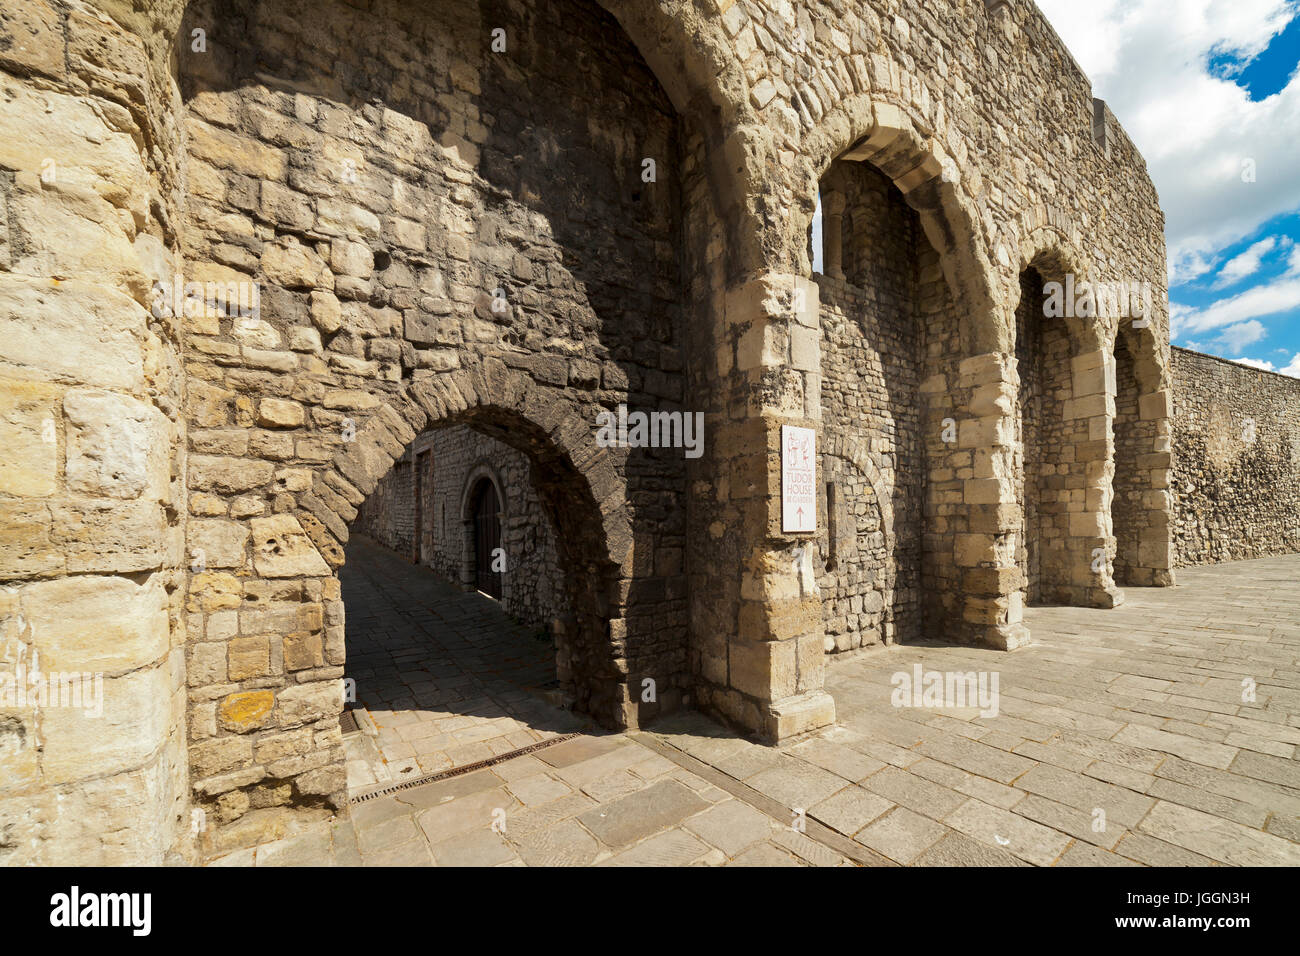 The Old City wall Arcades and gateway leading to Blue Anchor Lane, Western Esplanade, Southampton. - Stock Image